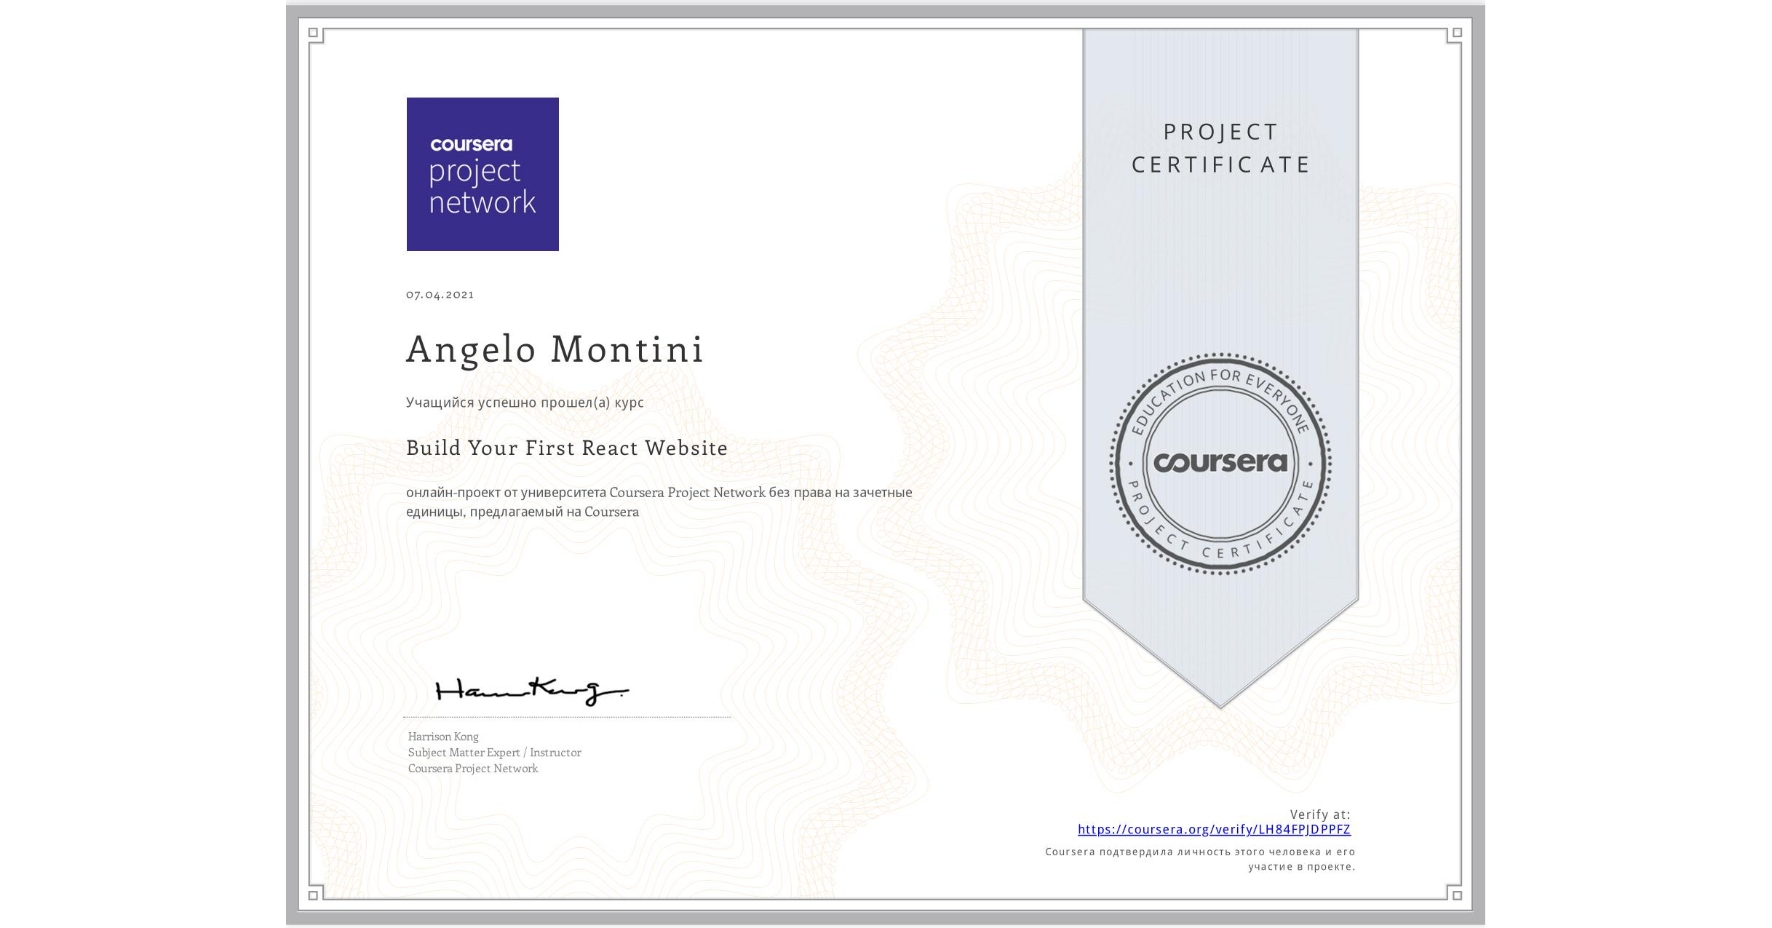 View certificate for Angelo Montini, Build Your First React Website, an online non-credit course authorized by Coursera Project Network and offered through Coursera